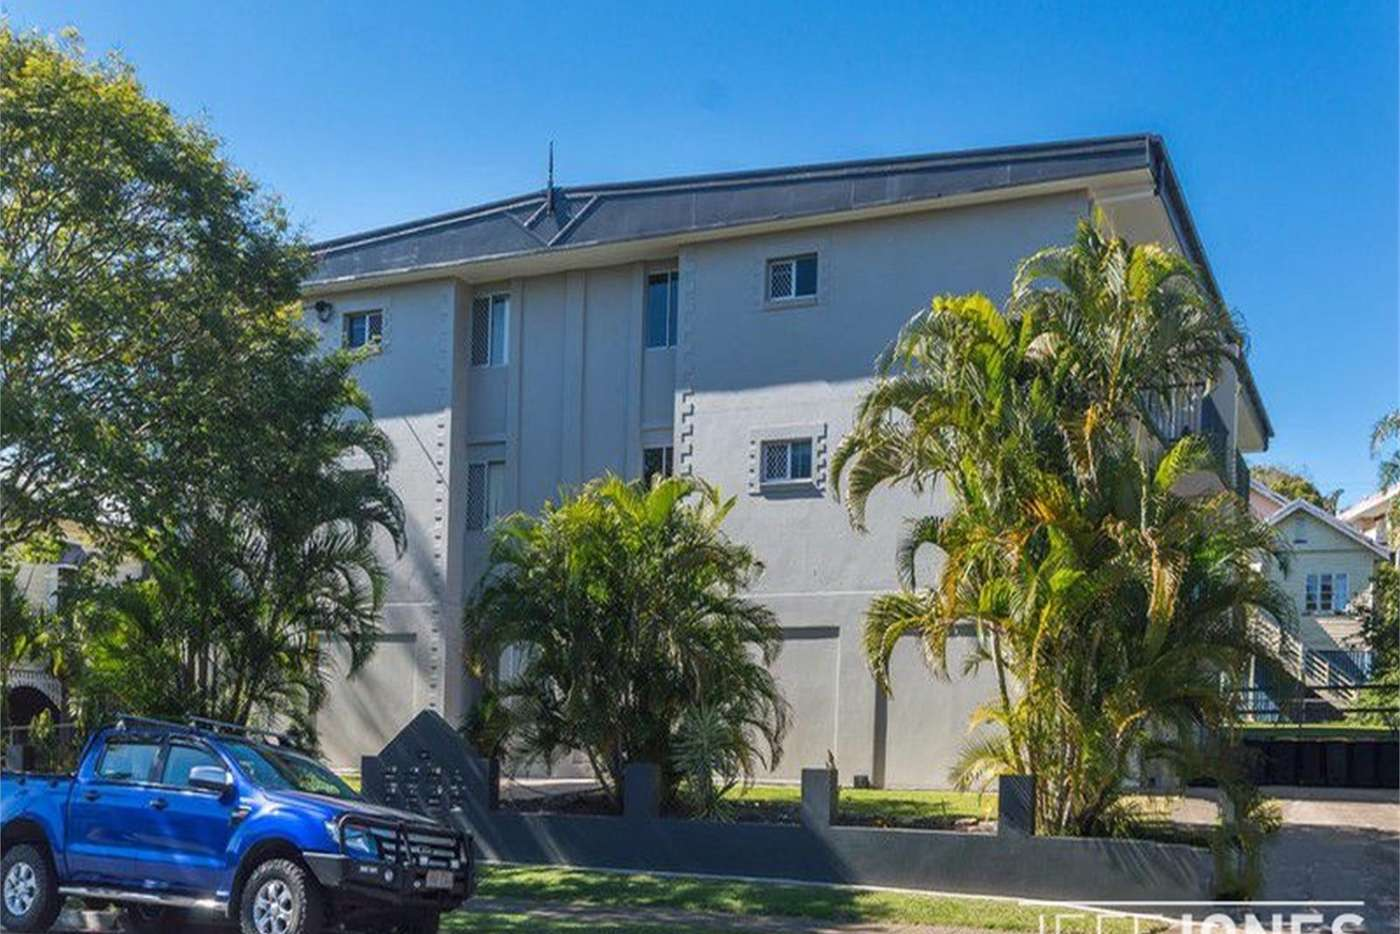 Main view of Homely unit listing, 1/42 Rialto Street, Coorparoo QLD 4151